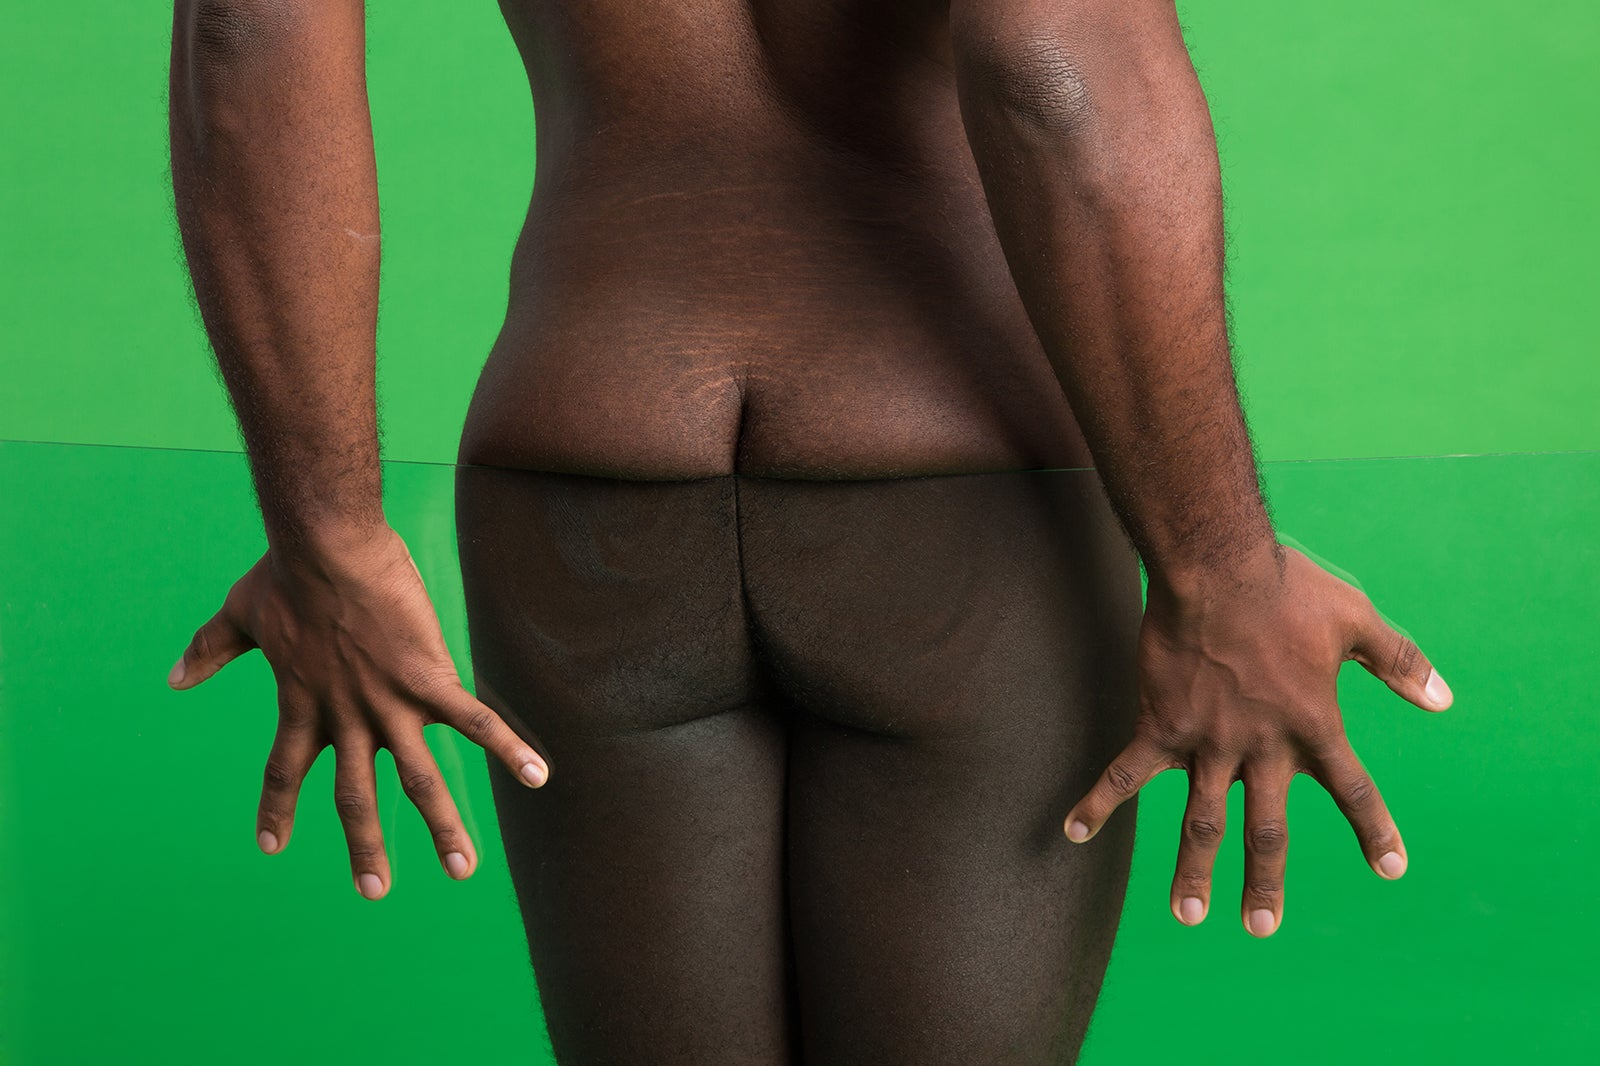 Nice Ass Butt naked men show nude butts pictures